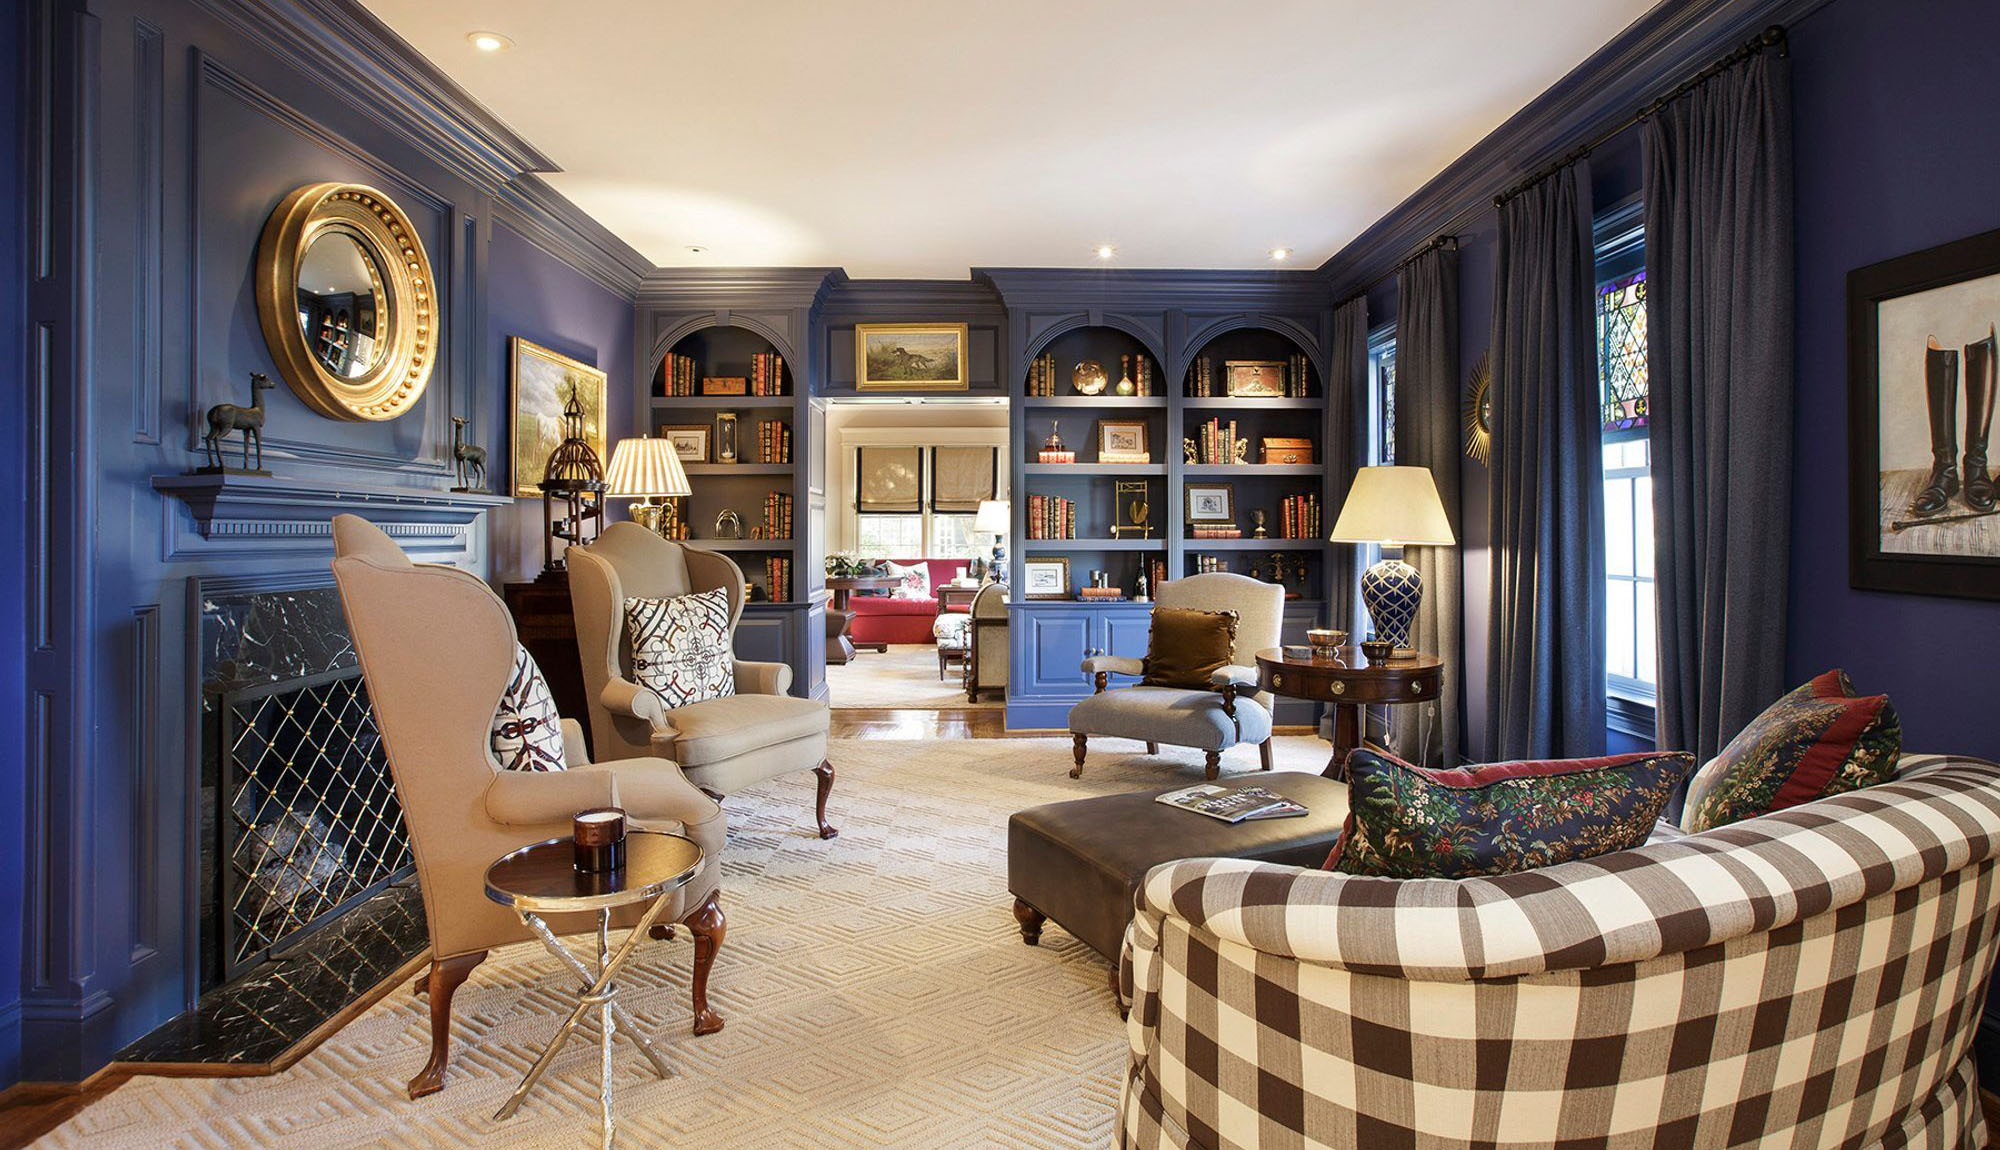 Monochromatic blue sitting room with built ins and blue fireplace surround. Brown secondary colors with a variety of materials and textures.